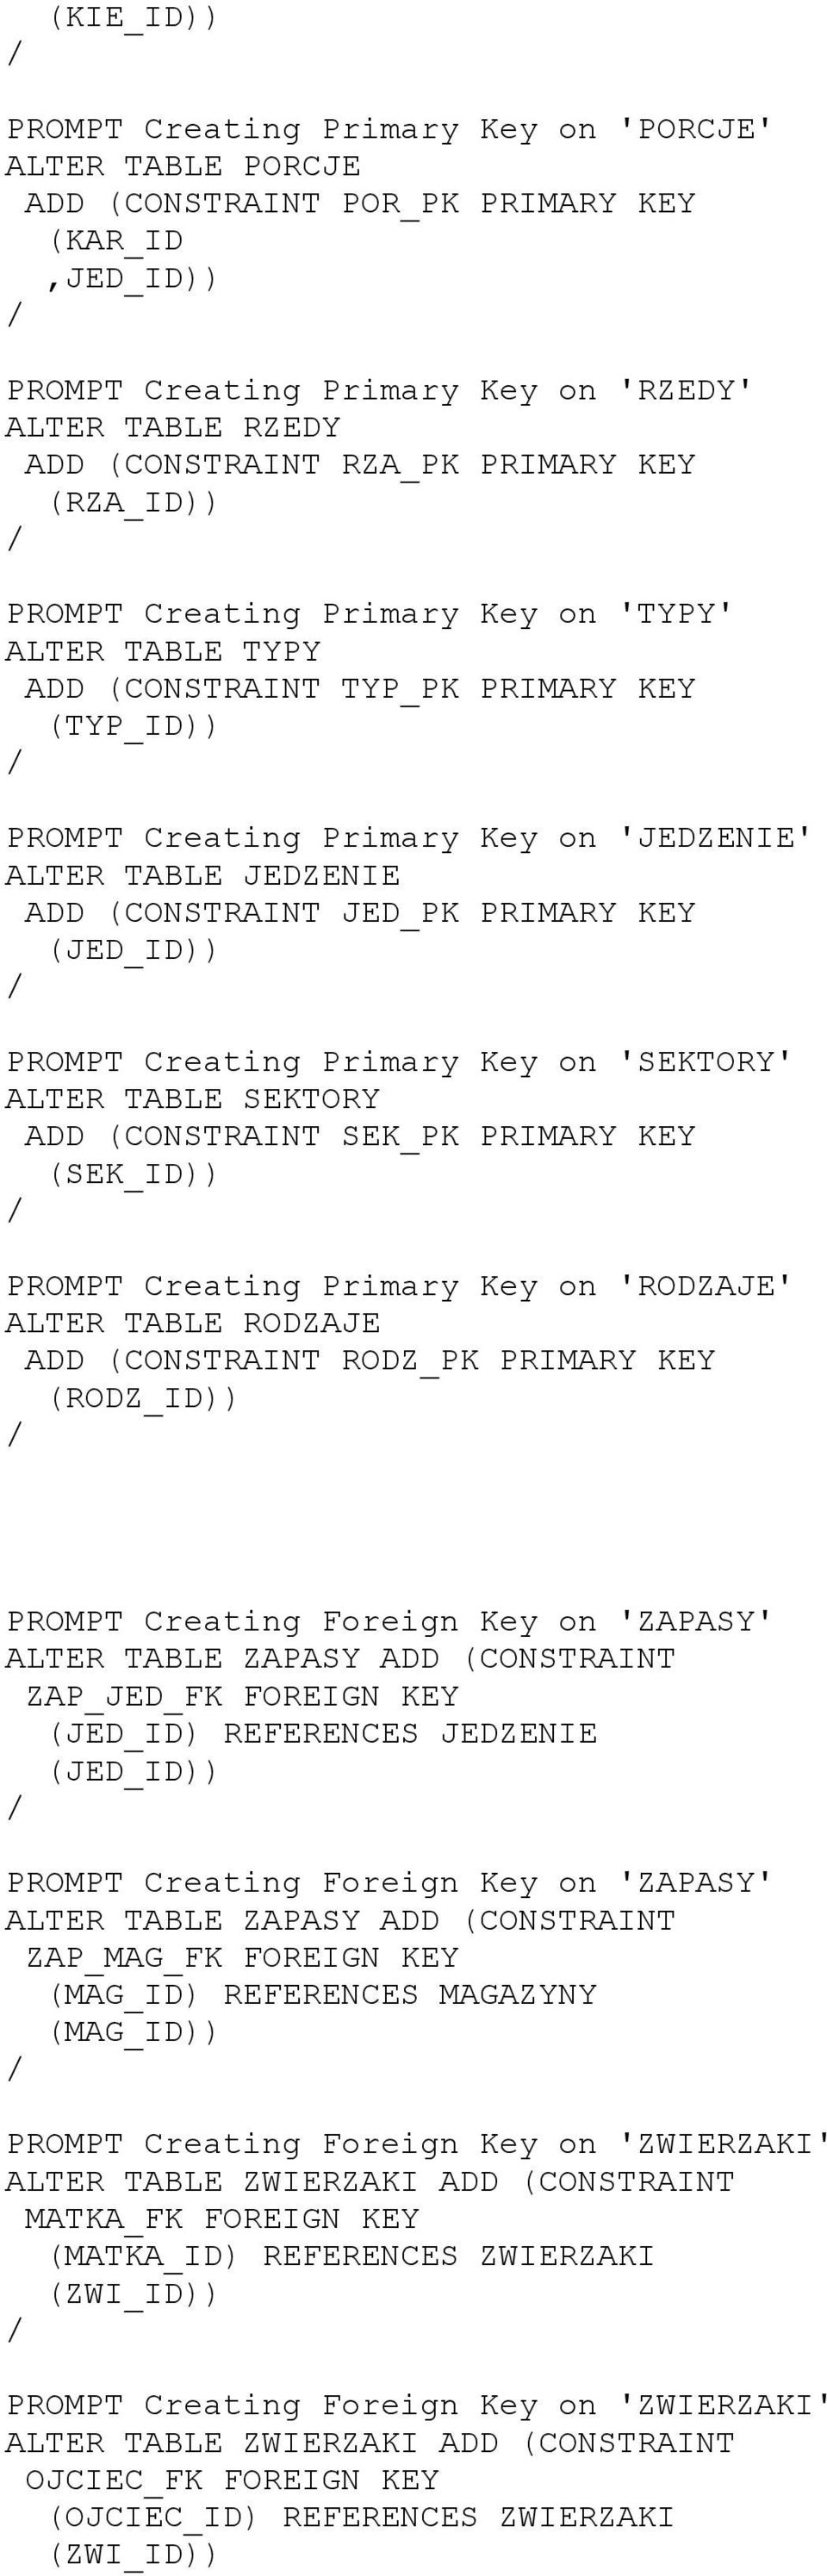 JED_PK PRIMARY KEY (JED_ID PROMPT Creating Primary Key on 'SEKTORY' ALTER TABLE SEKTORY ADD (CONSTRAINT SEK_PK PRIMARY KEY (SEK_ID PROMPT Creating Primary Key on 'RODZAJE' ALTER TABLE RODZAJE ADD